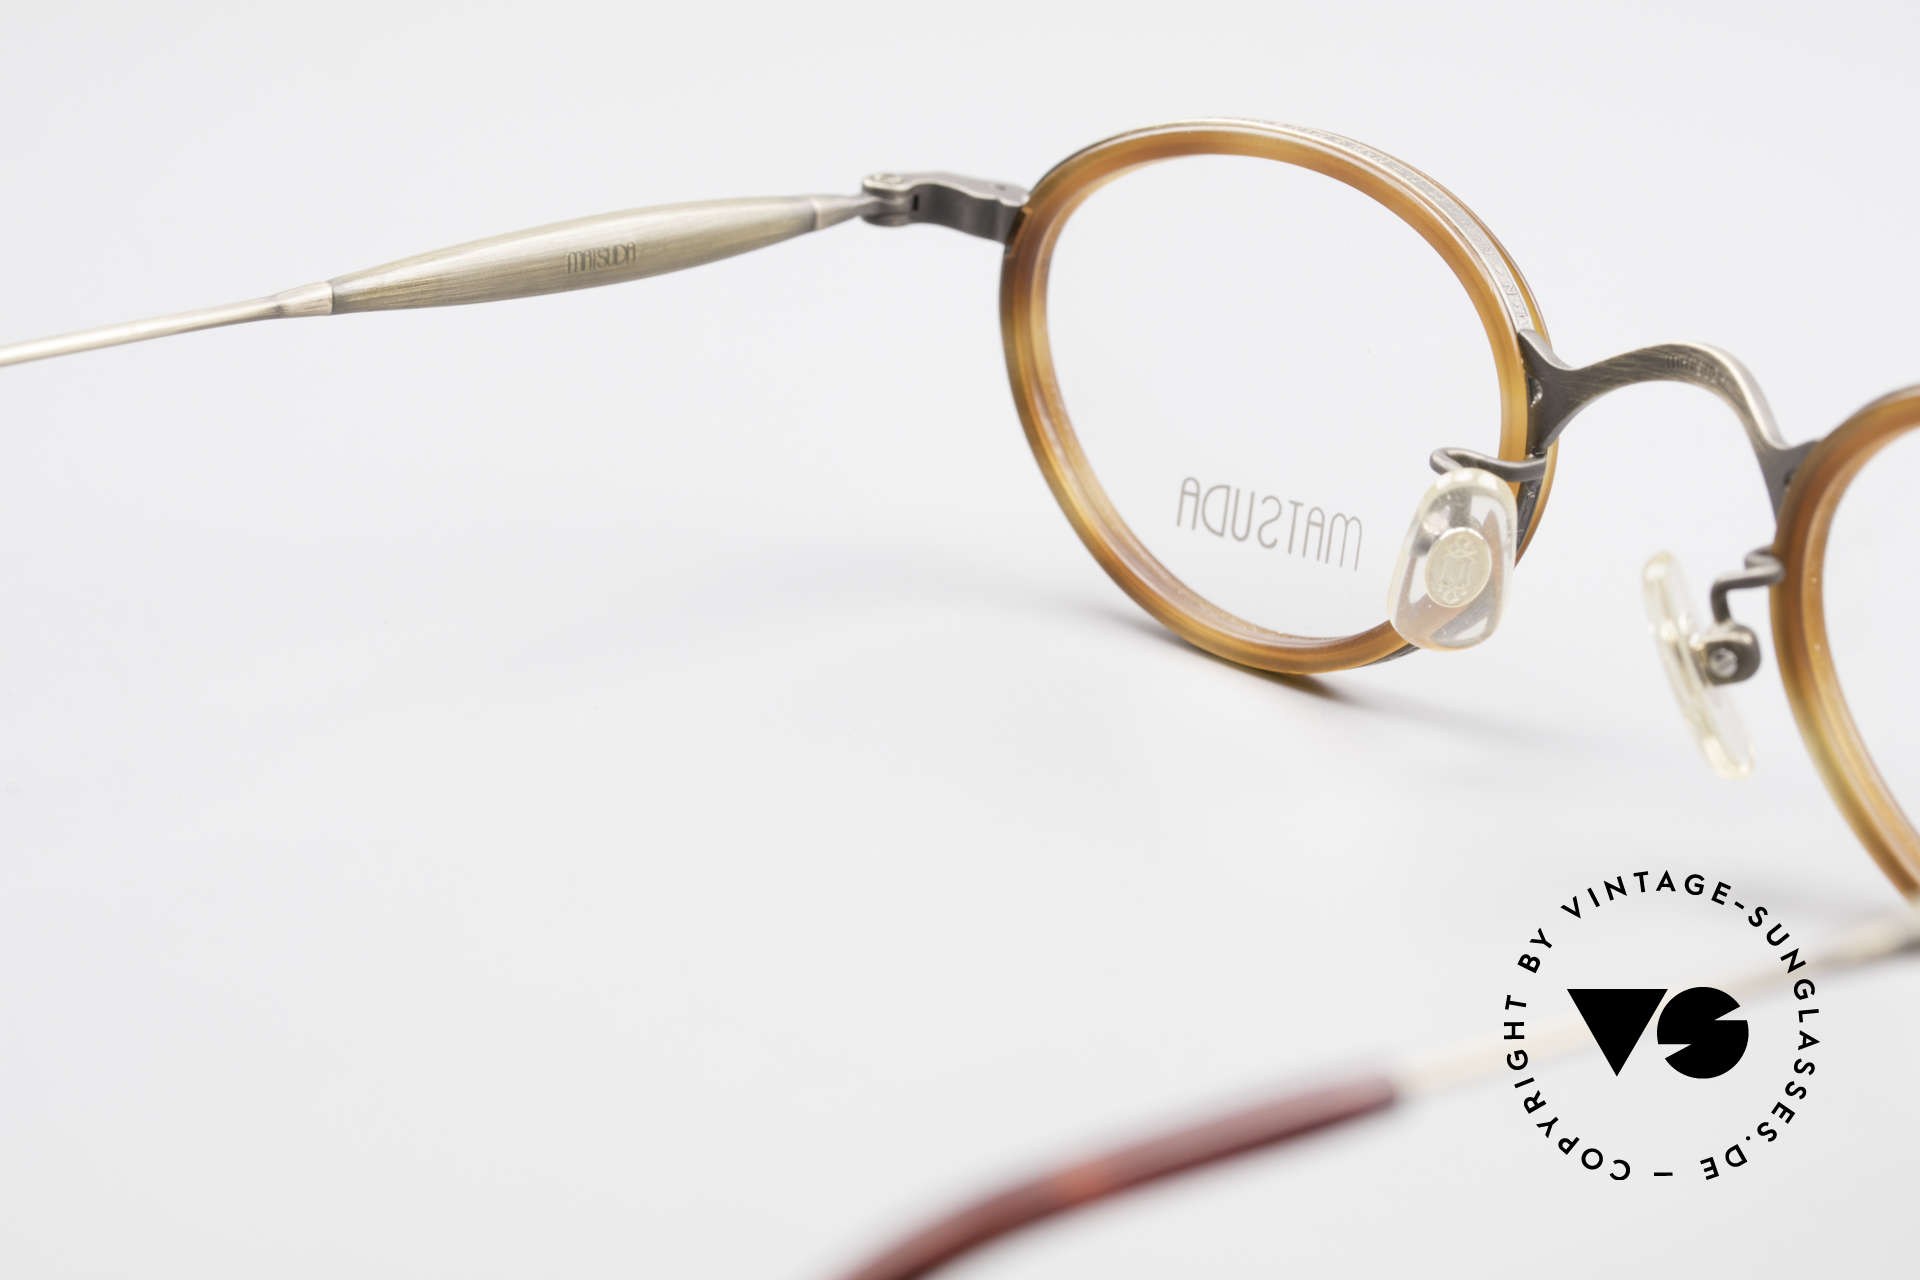 Matsuda 10401 Vintage Eyeglass-Frame Oval, NO retro glasses, but a 20 years old designer piece, Made for Men and Women